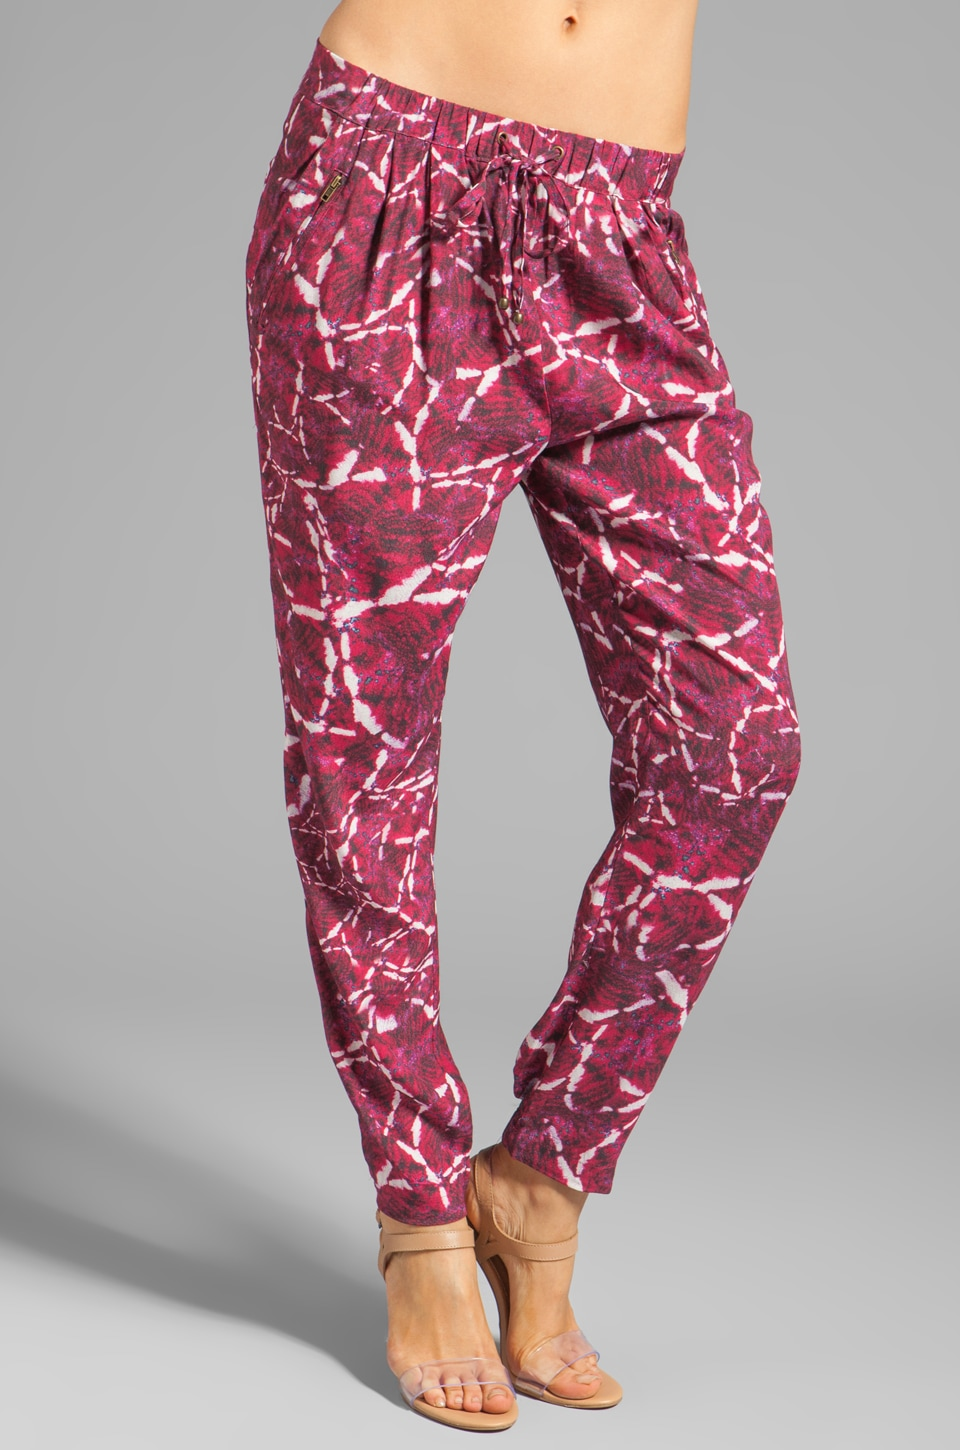 Wish Fortuity Pants in Ruby